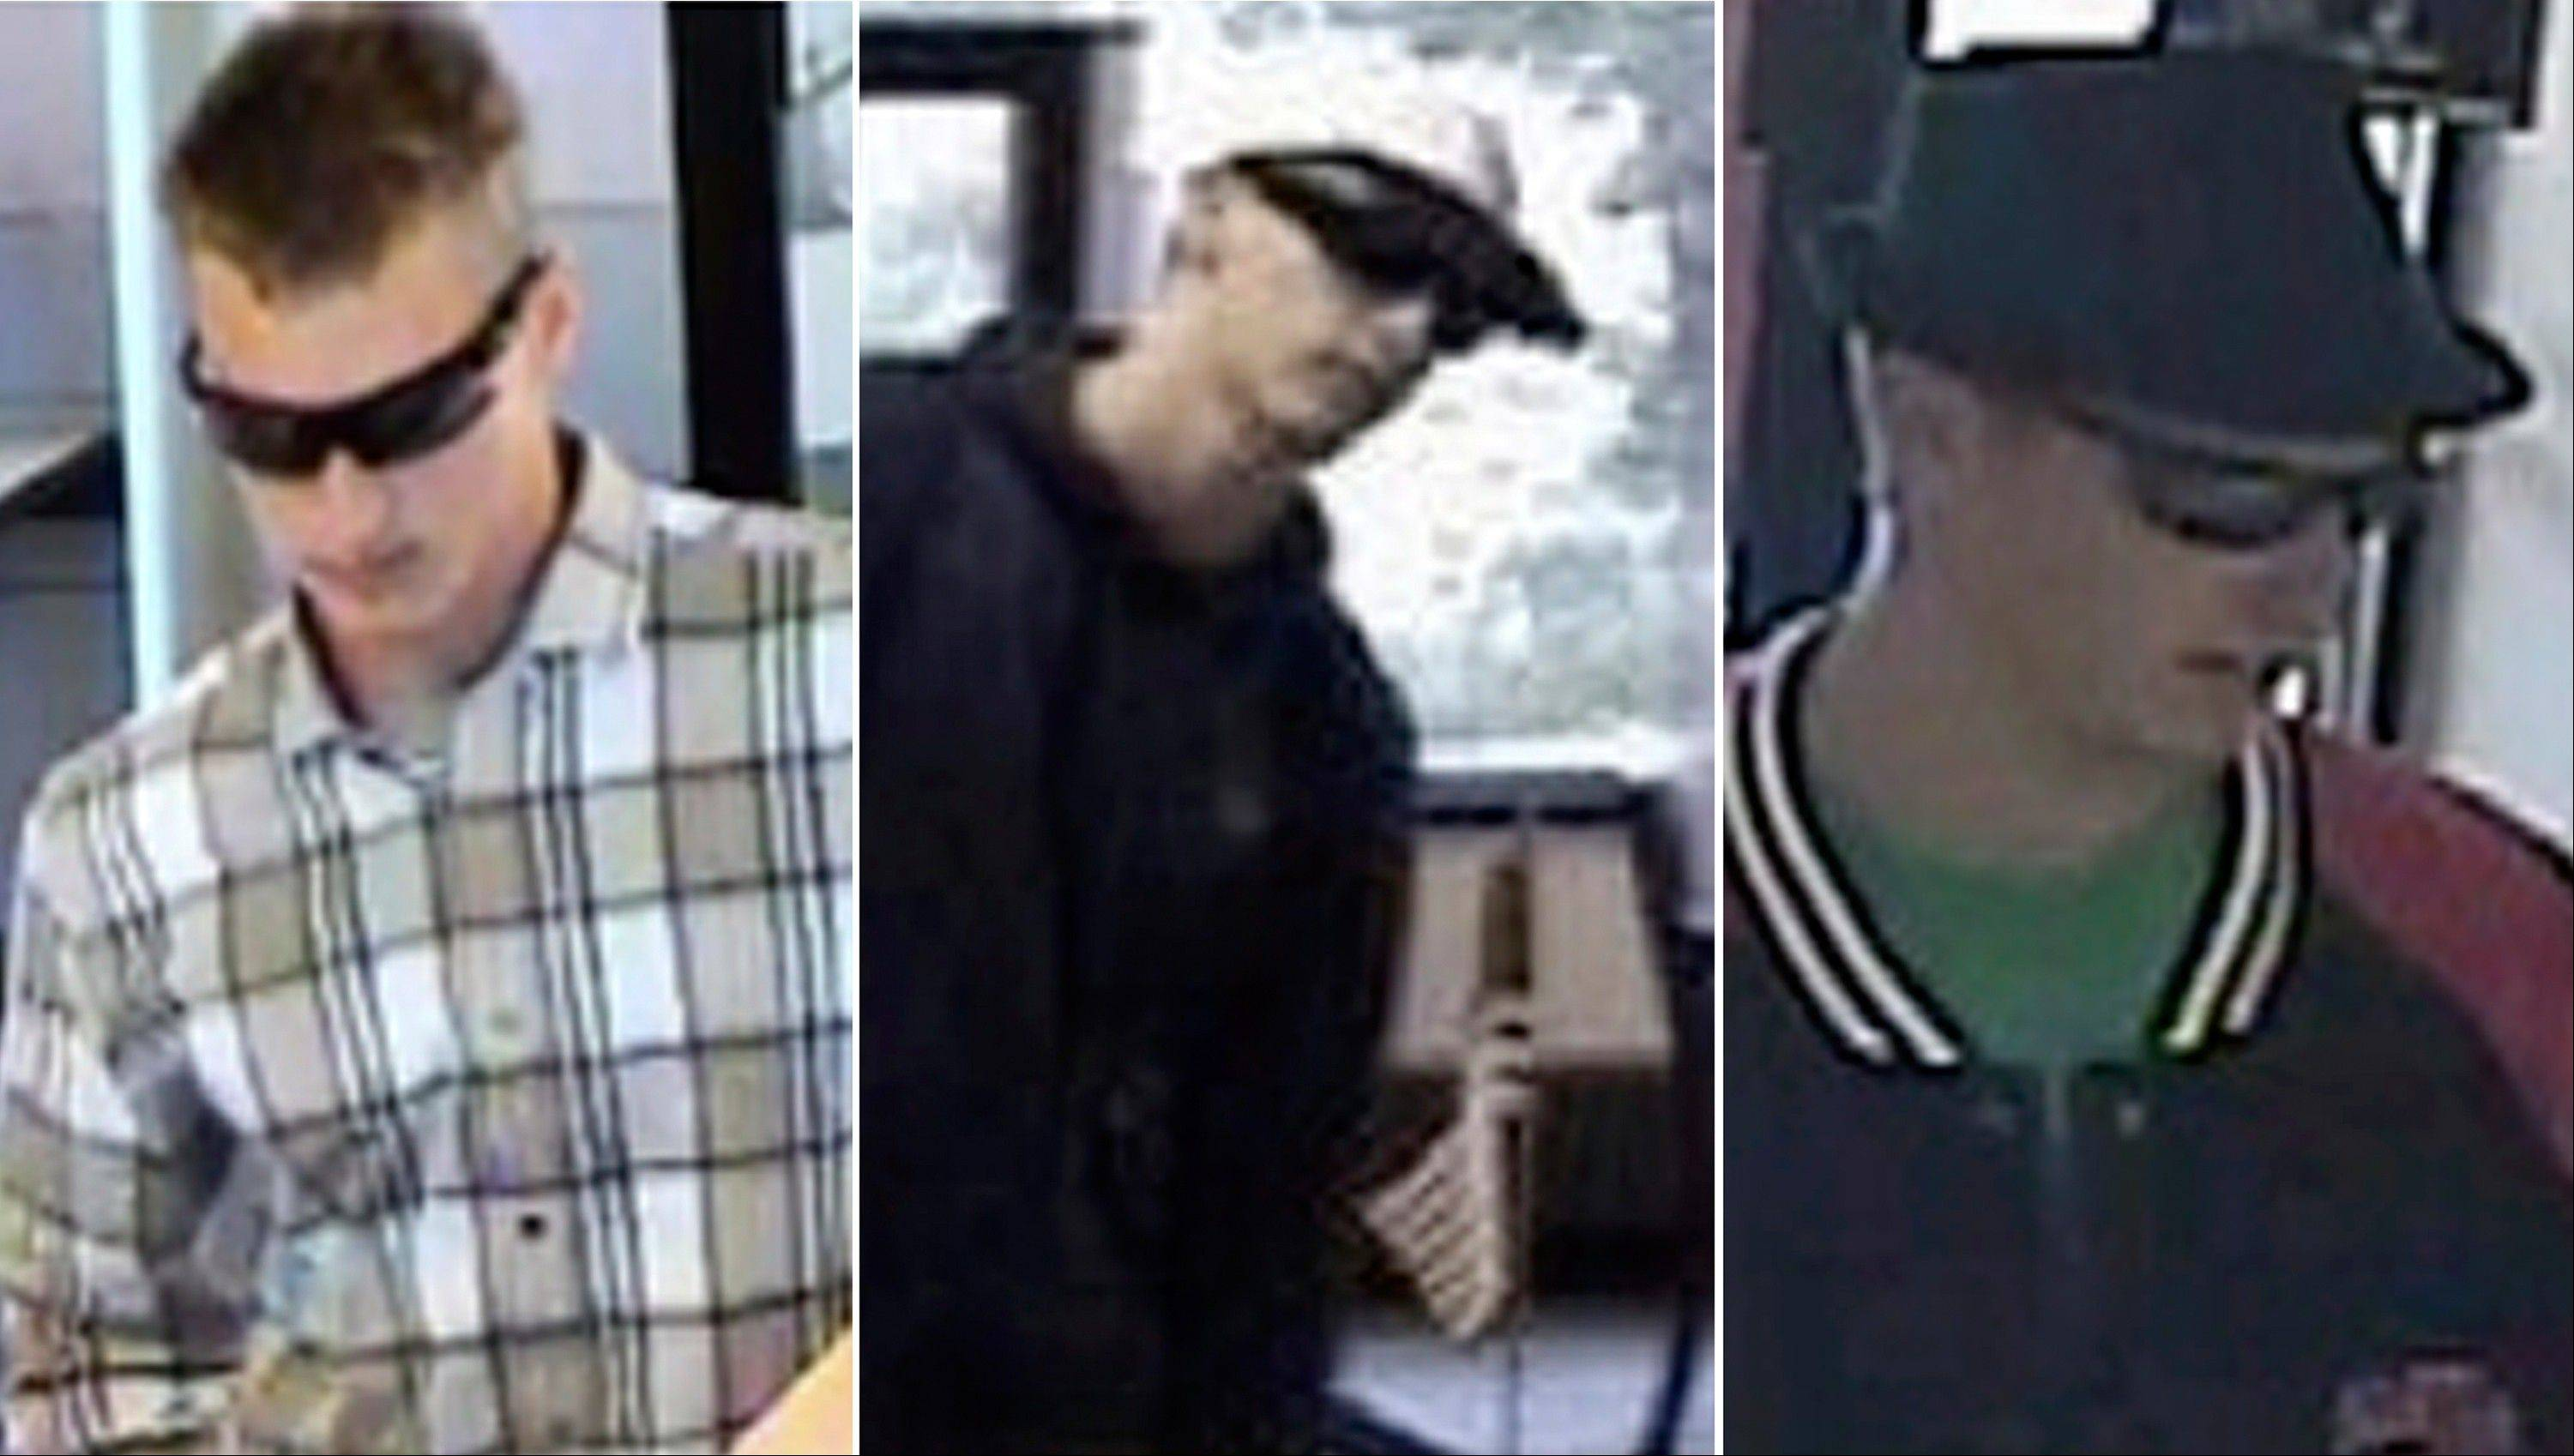 This combination of surveillance photos released by the Federal Bureau of Investigation shows Andrew Maberry, a serial bank robber the FBI dubbed the �I-55 Bandit� in, from left, Hurricane, W.Va., on July 30, 2013; Arnold, Mo. on July 2, 2013; and Bel Air, Md. on June 5, 2013.